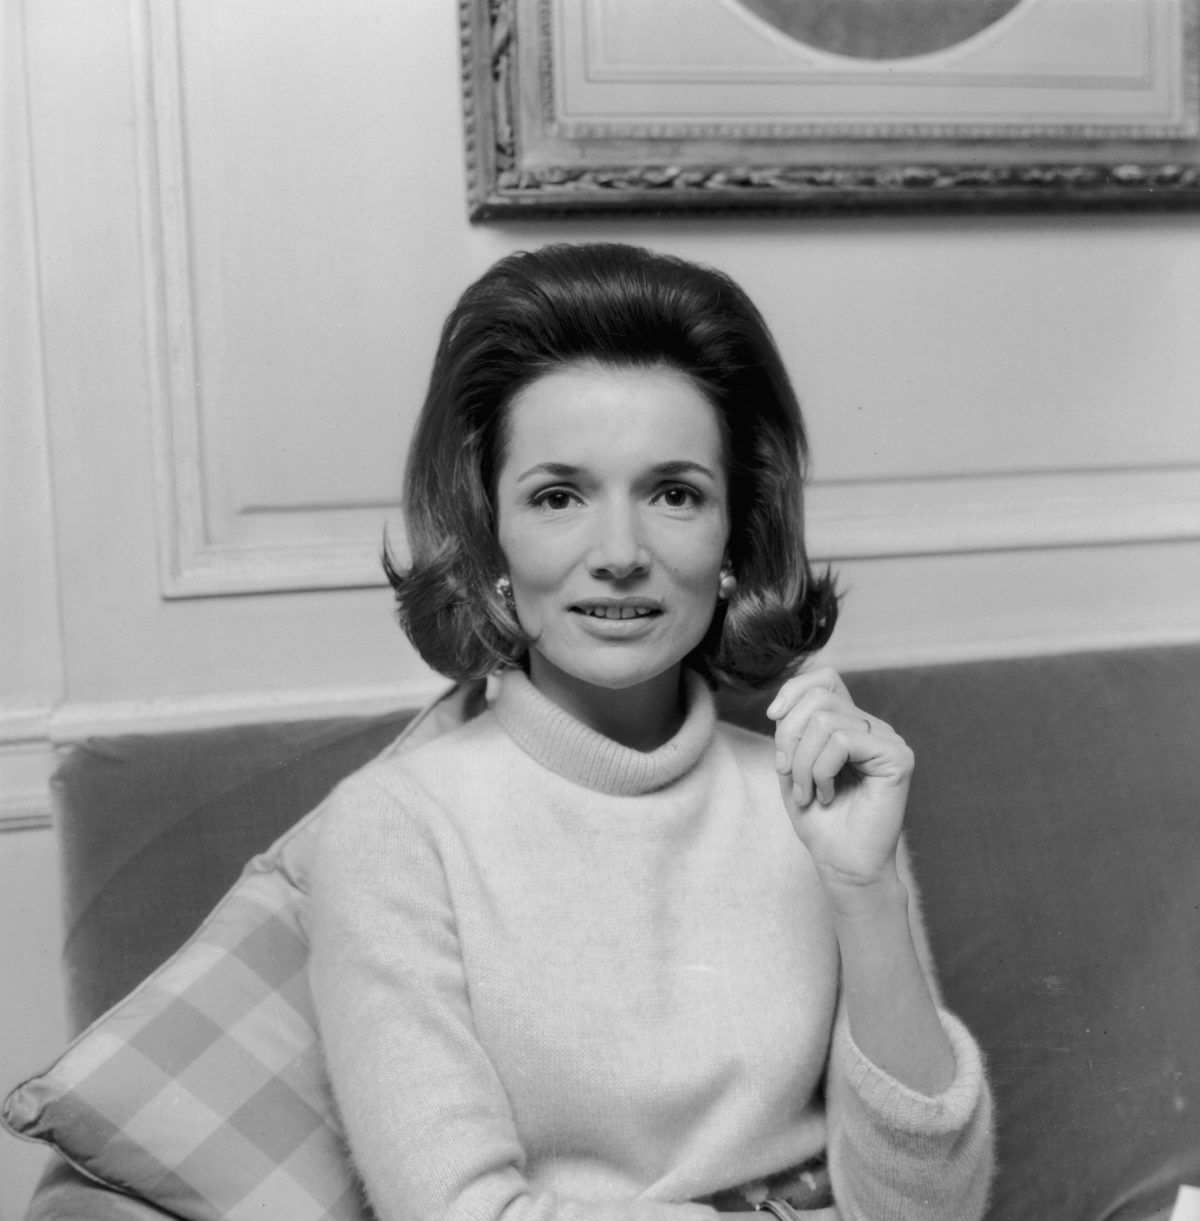 Lee Radziwill, princess, fashion icon and Jackie Kennedy's sister, dies